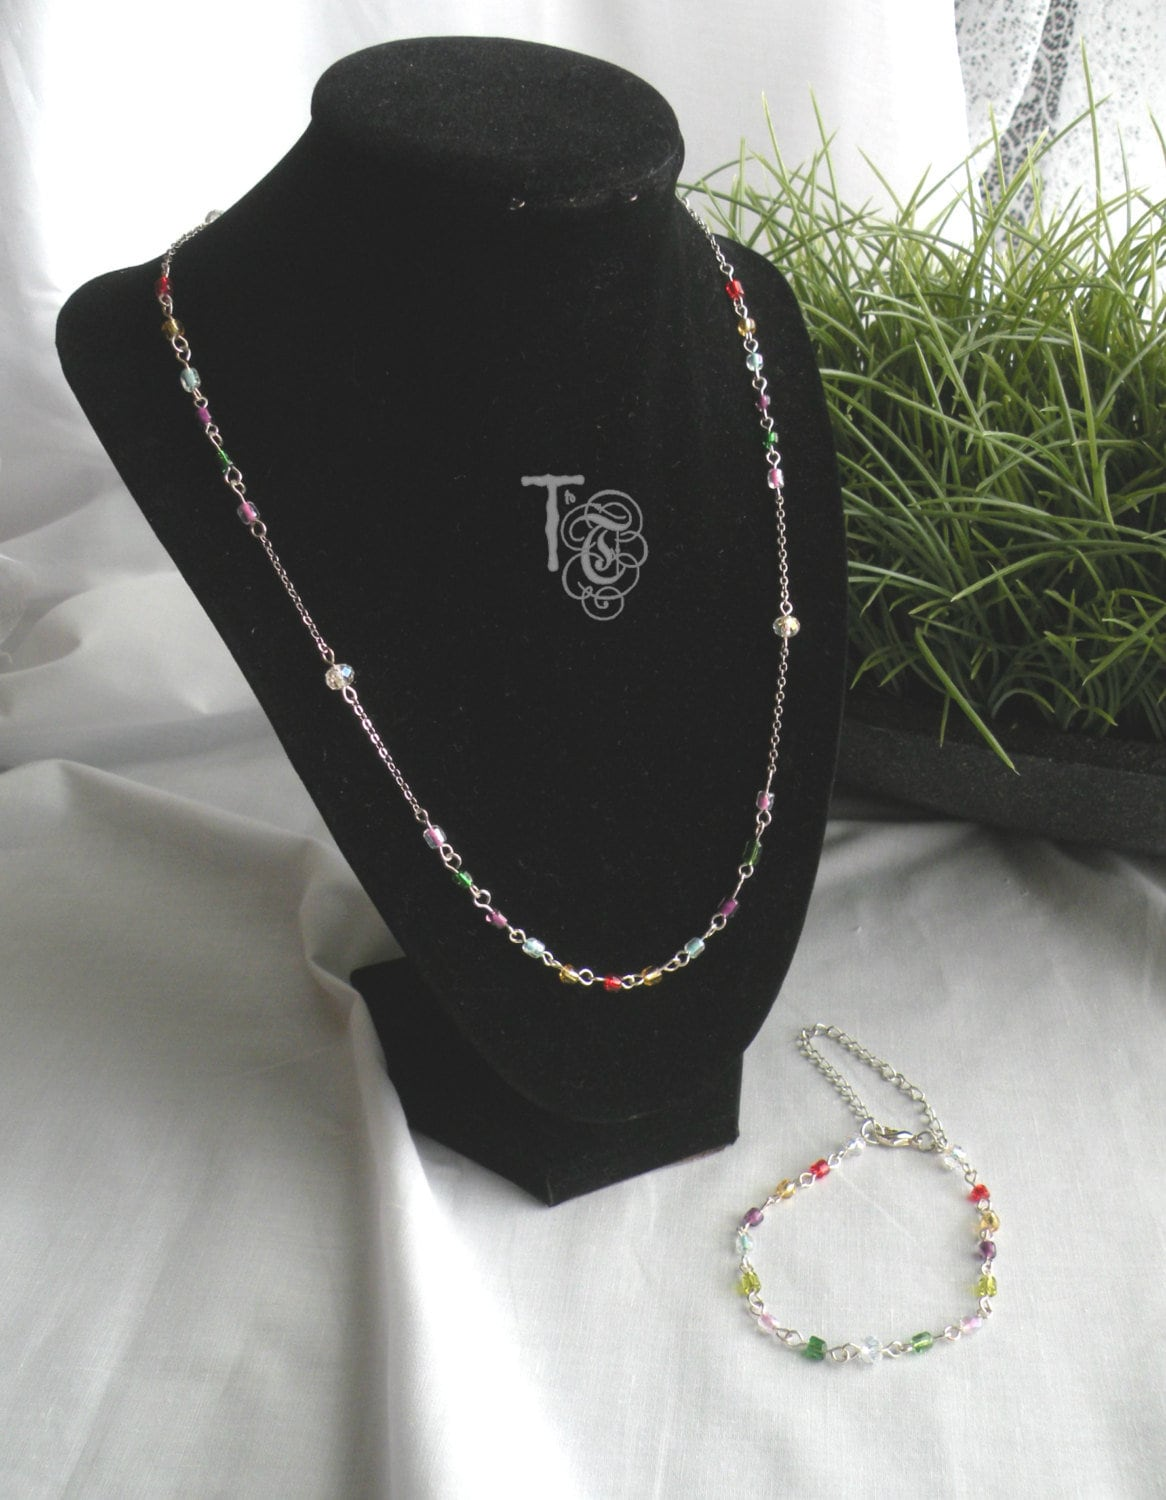 Swarovski Crystals And Colorful E Bead Jewelry Set Delicate Rosary